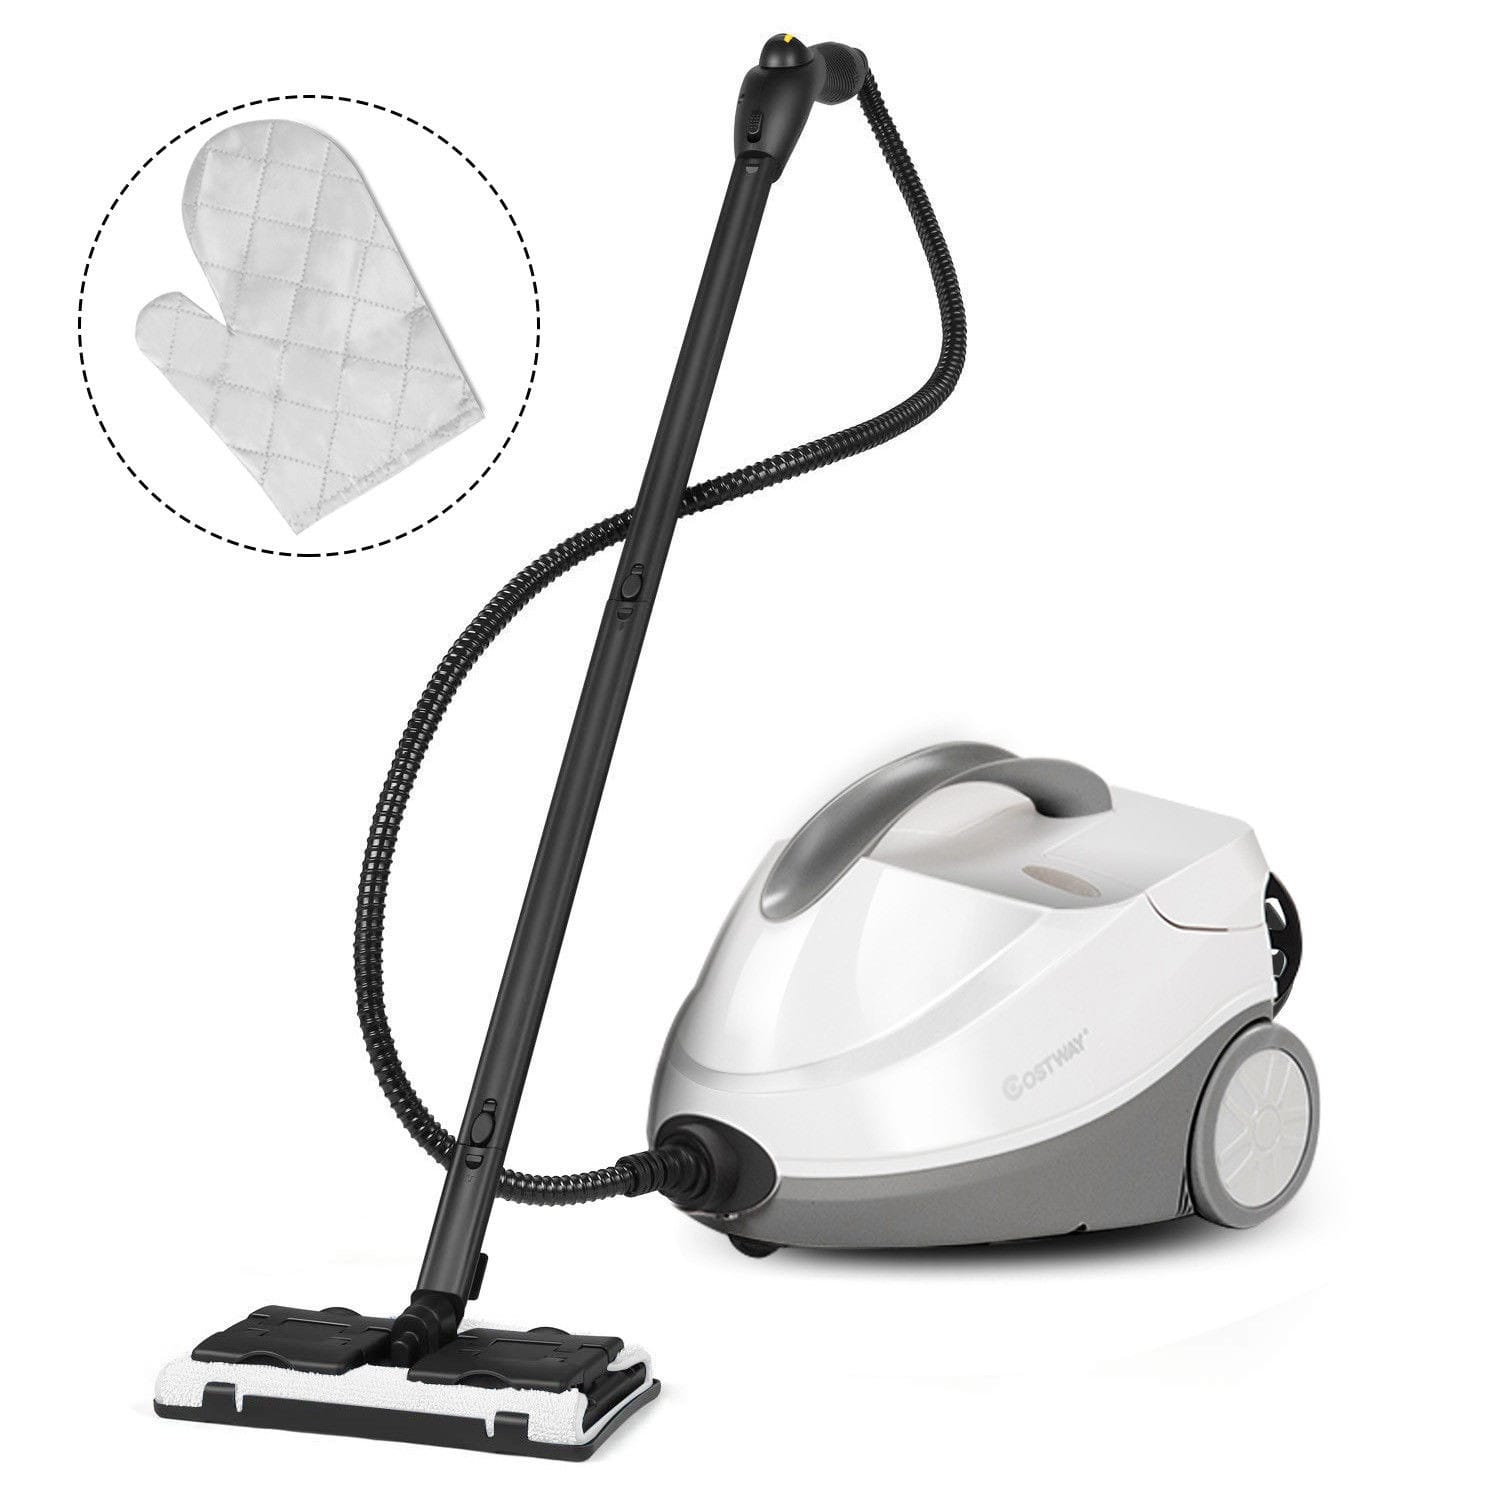 2000 W 1.5L Steam Cleaner Mop Multi-Purpose Steam Cleaning - $75.95 + Free Shipping